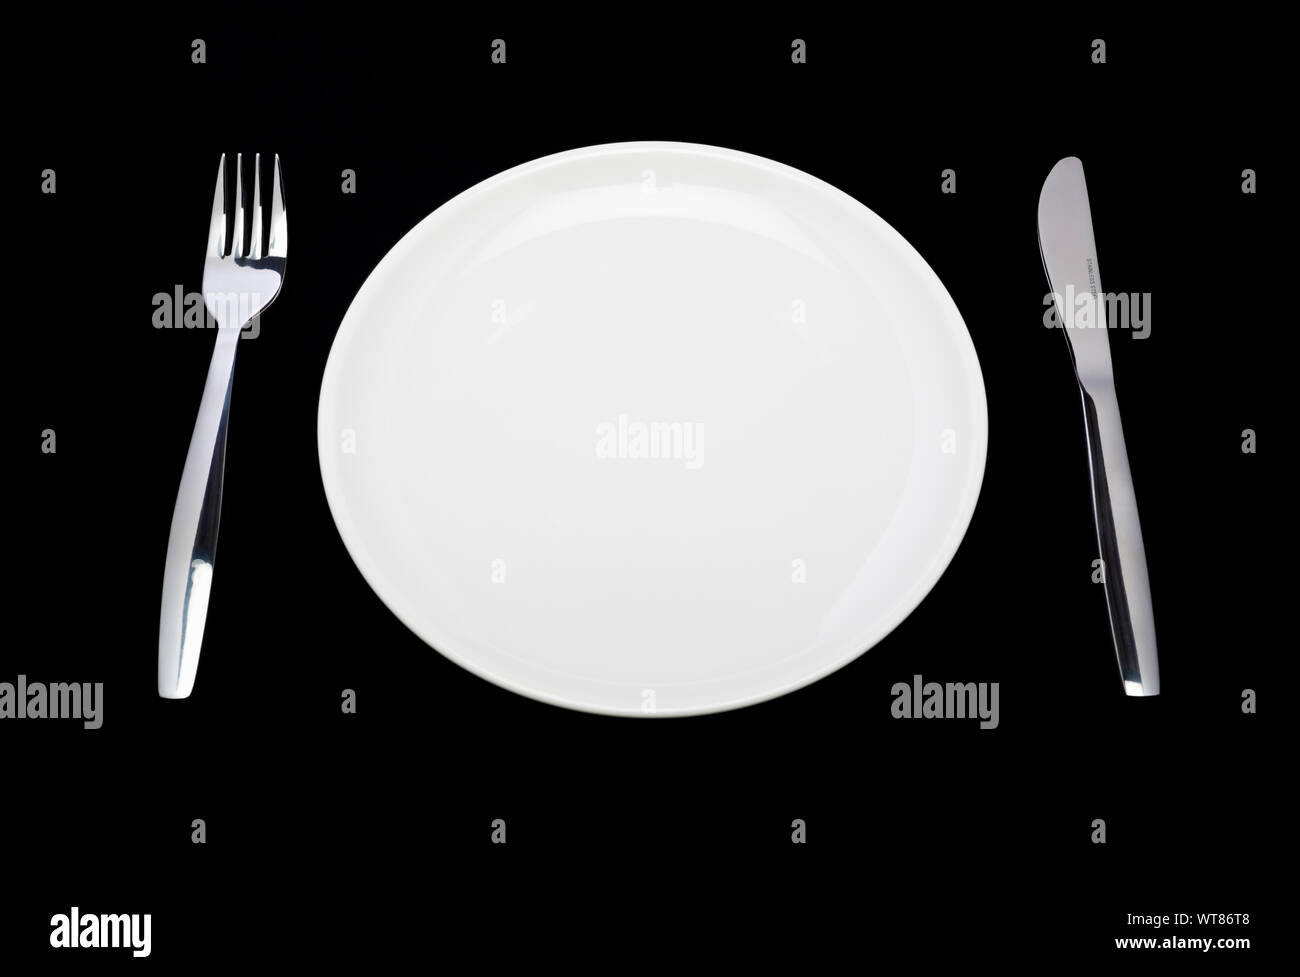 Place setting, white plate, knife and fork on a black background Stock Photo